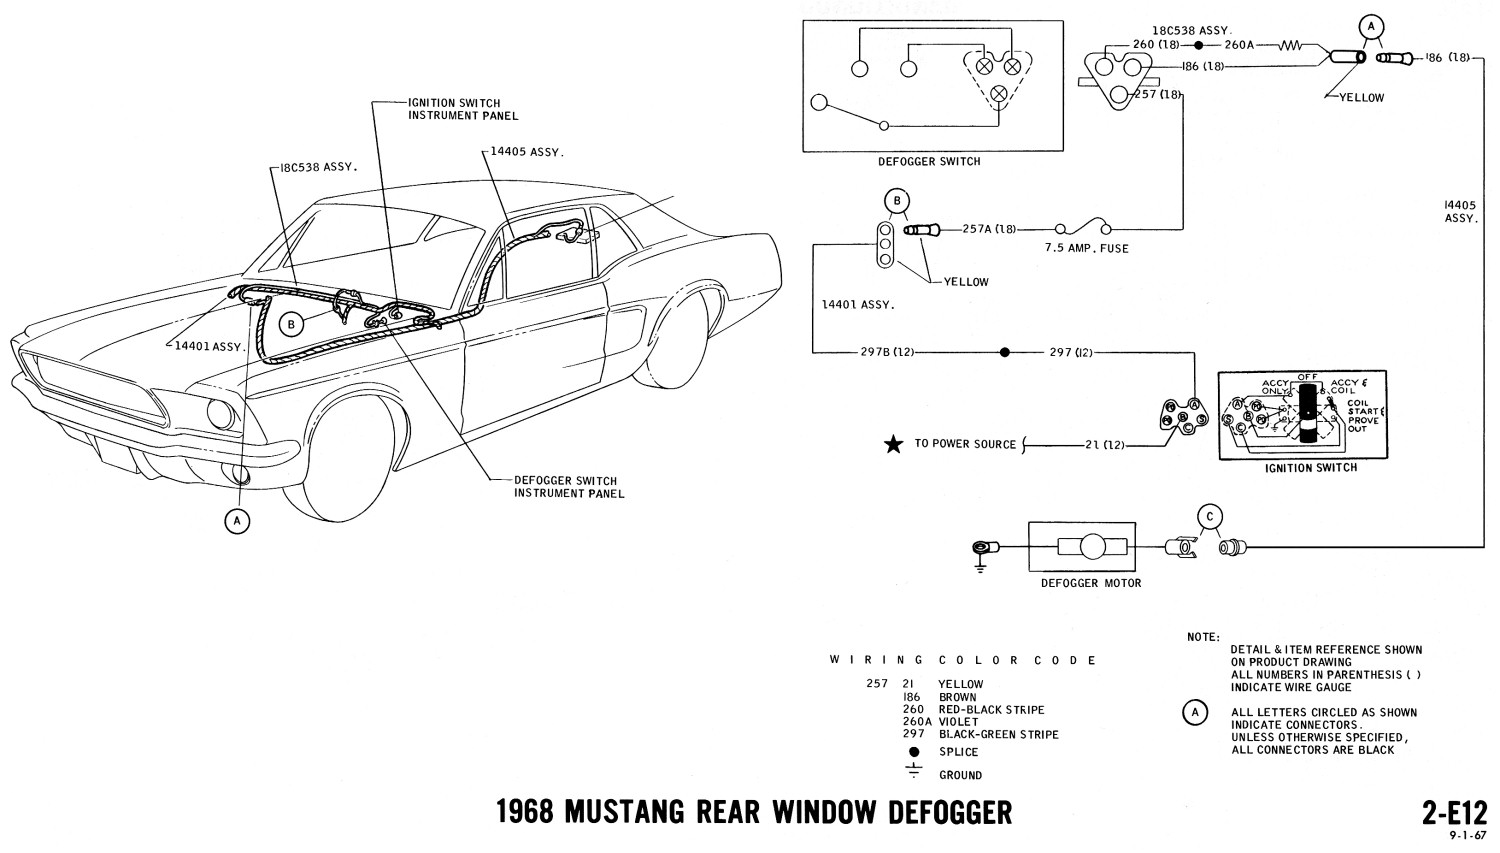 2001 Ford Mustang Wiring Schematic Library Escape Steering Wheel Defogger